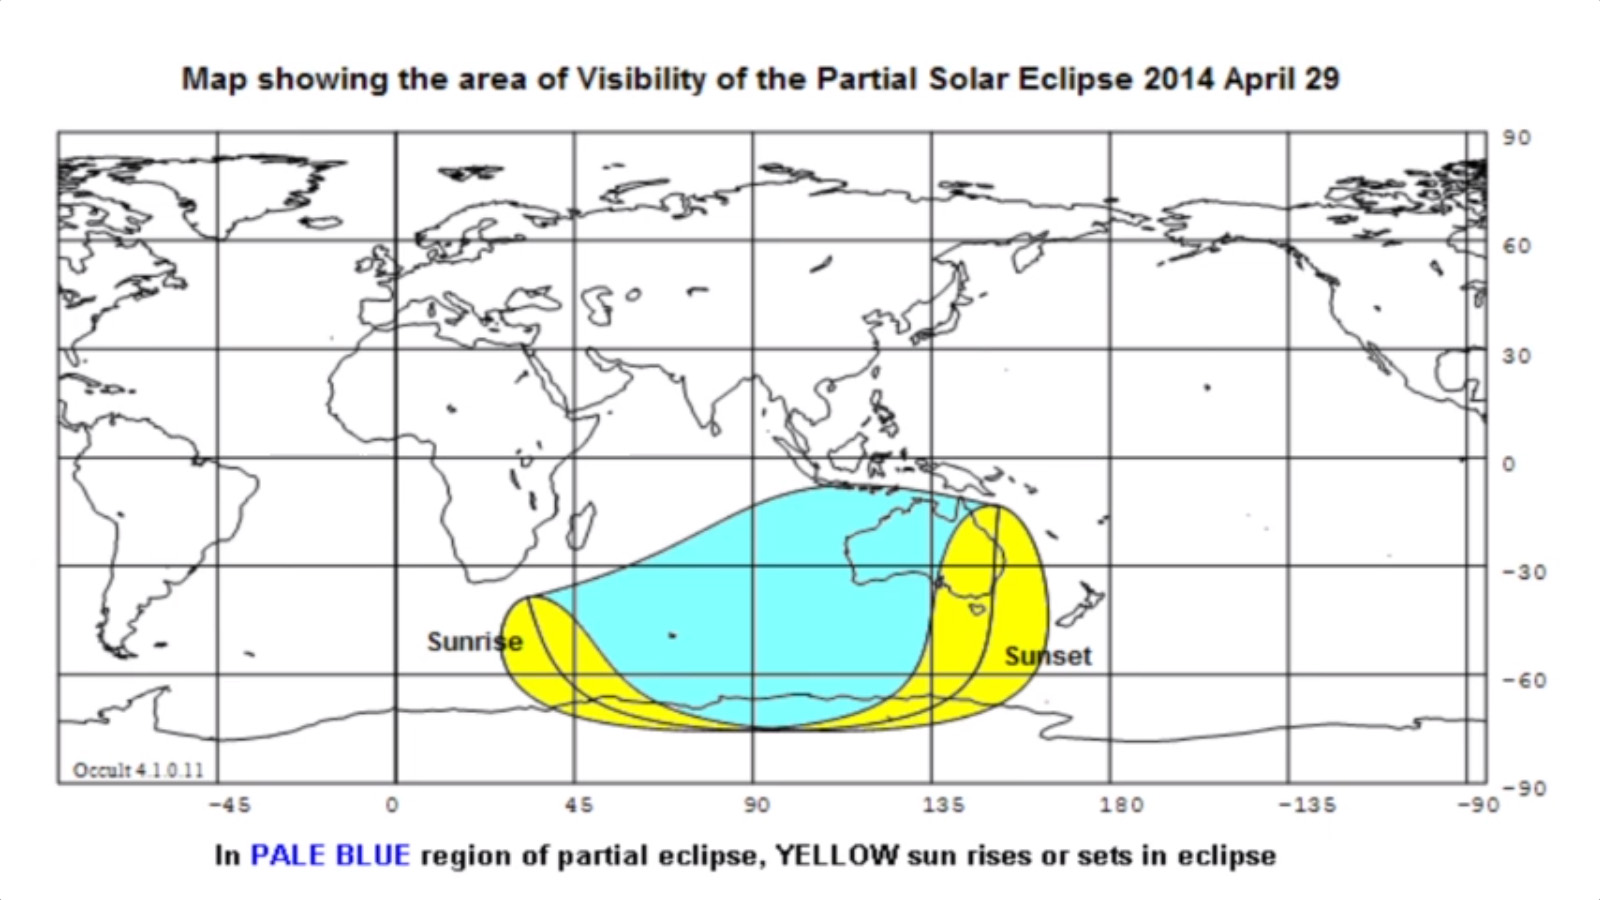 Solar Eclipse Visibility Map: April 29, 2014